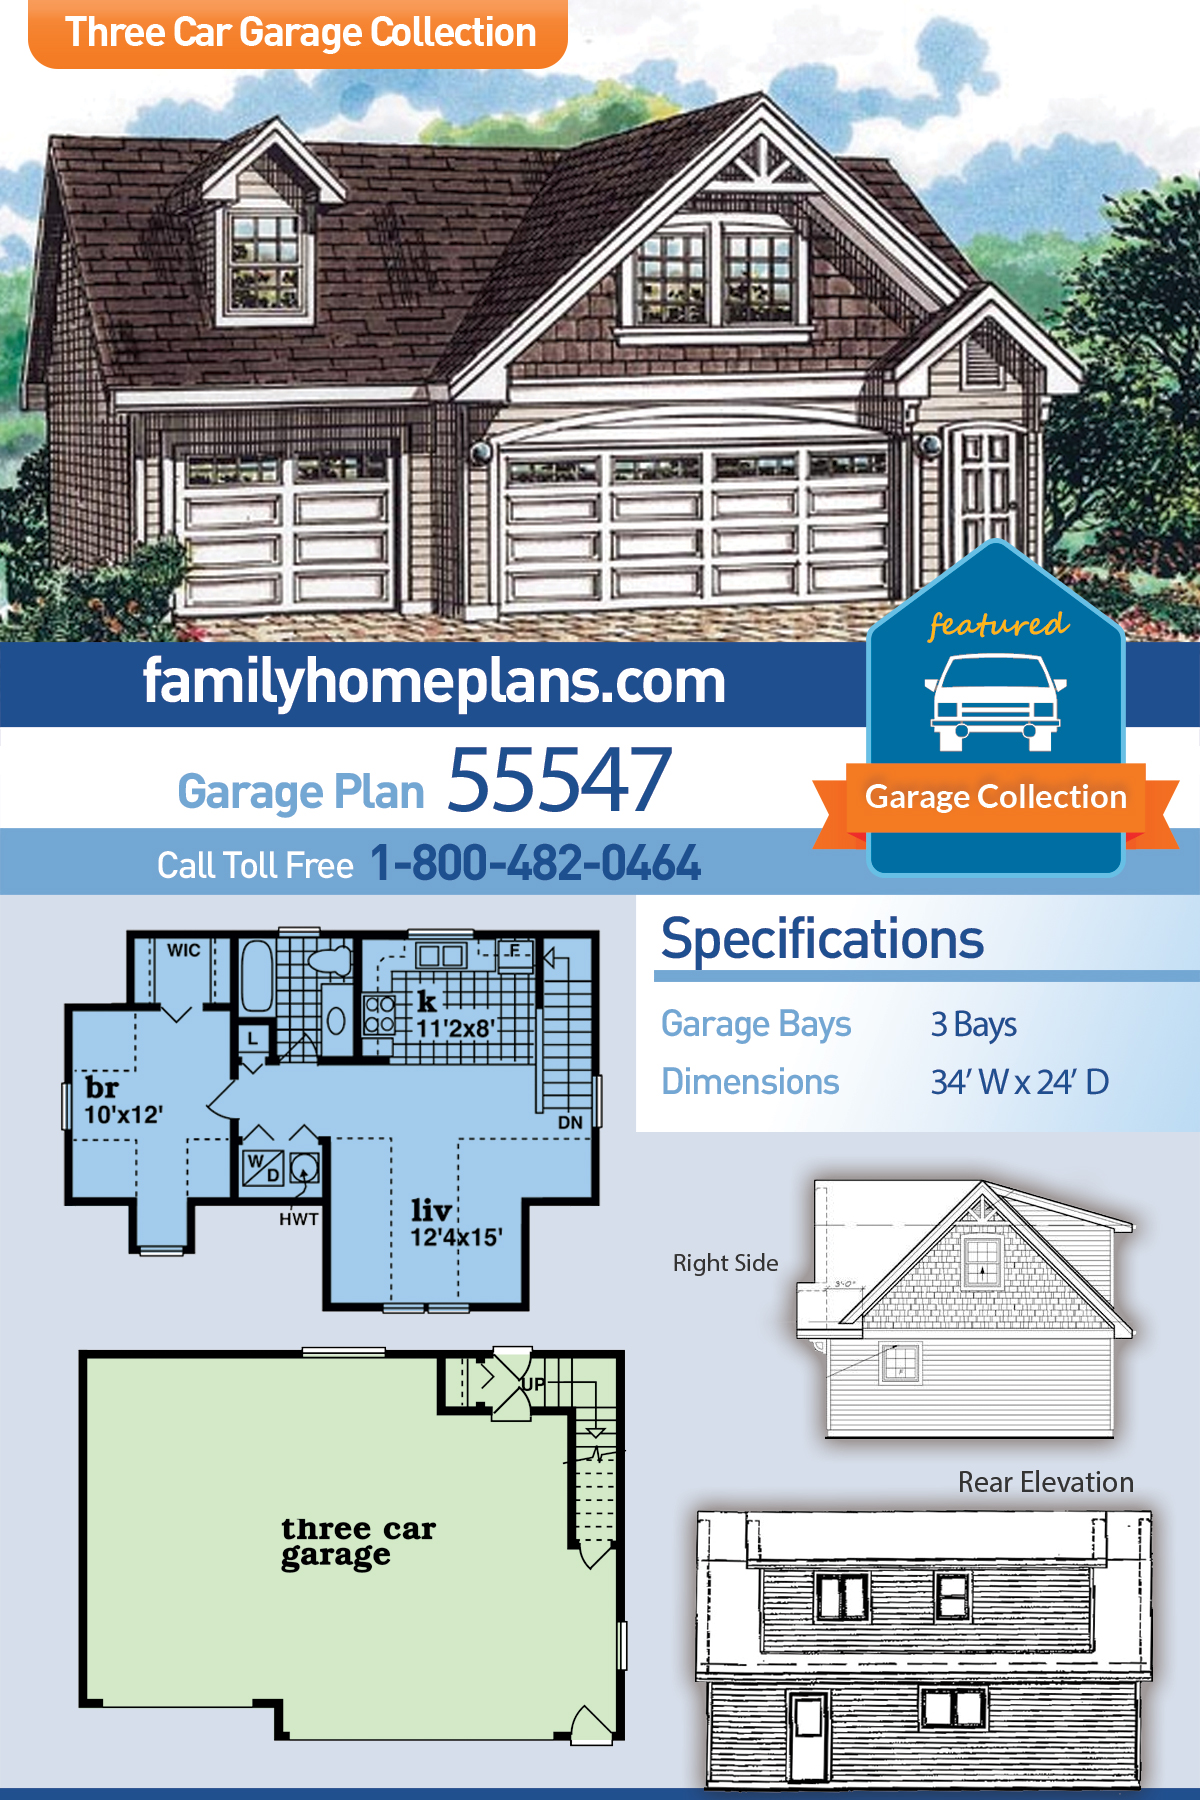 Cape Cod 3 Car Garage Apartment Plan 55547 with 1 Beds, 1 Baths